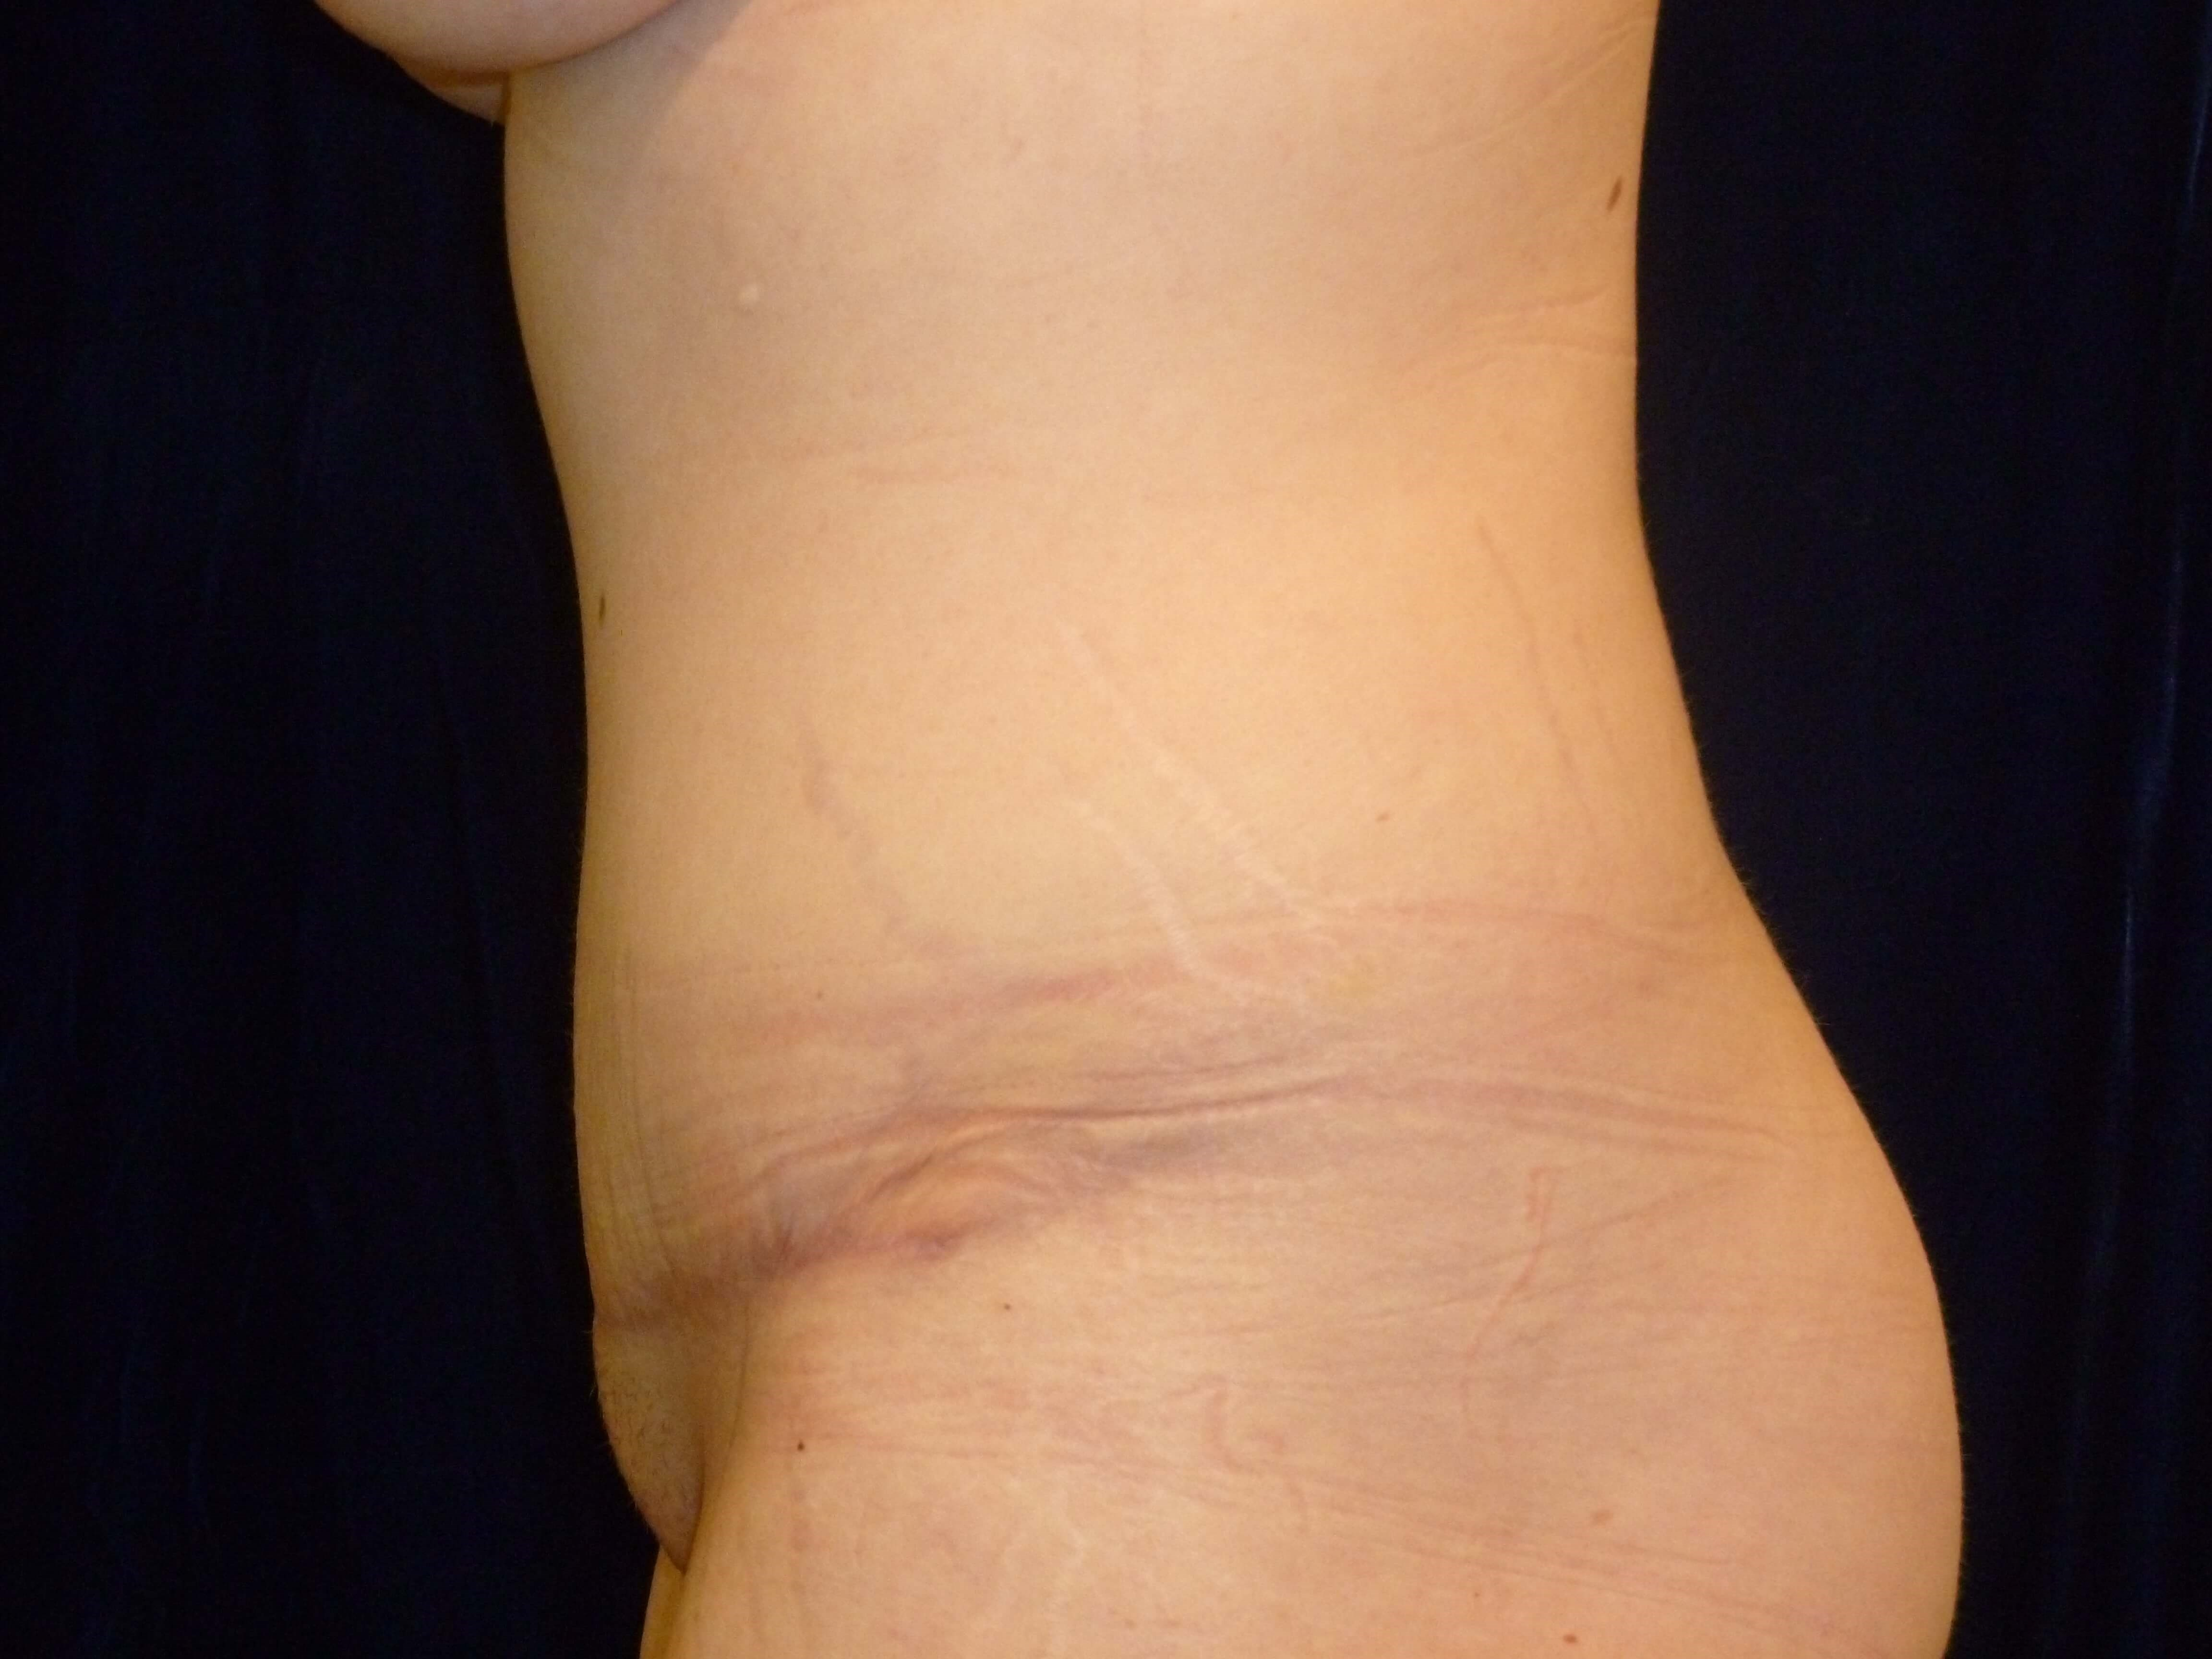 Full Tummy Tuck Side View After